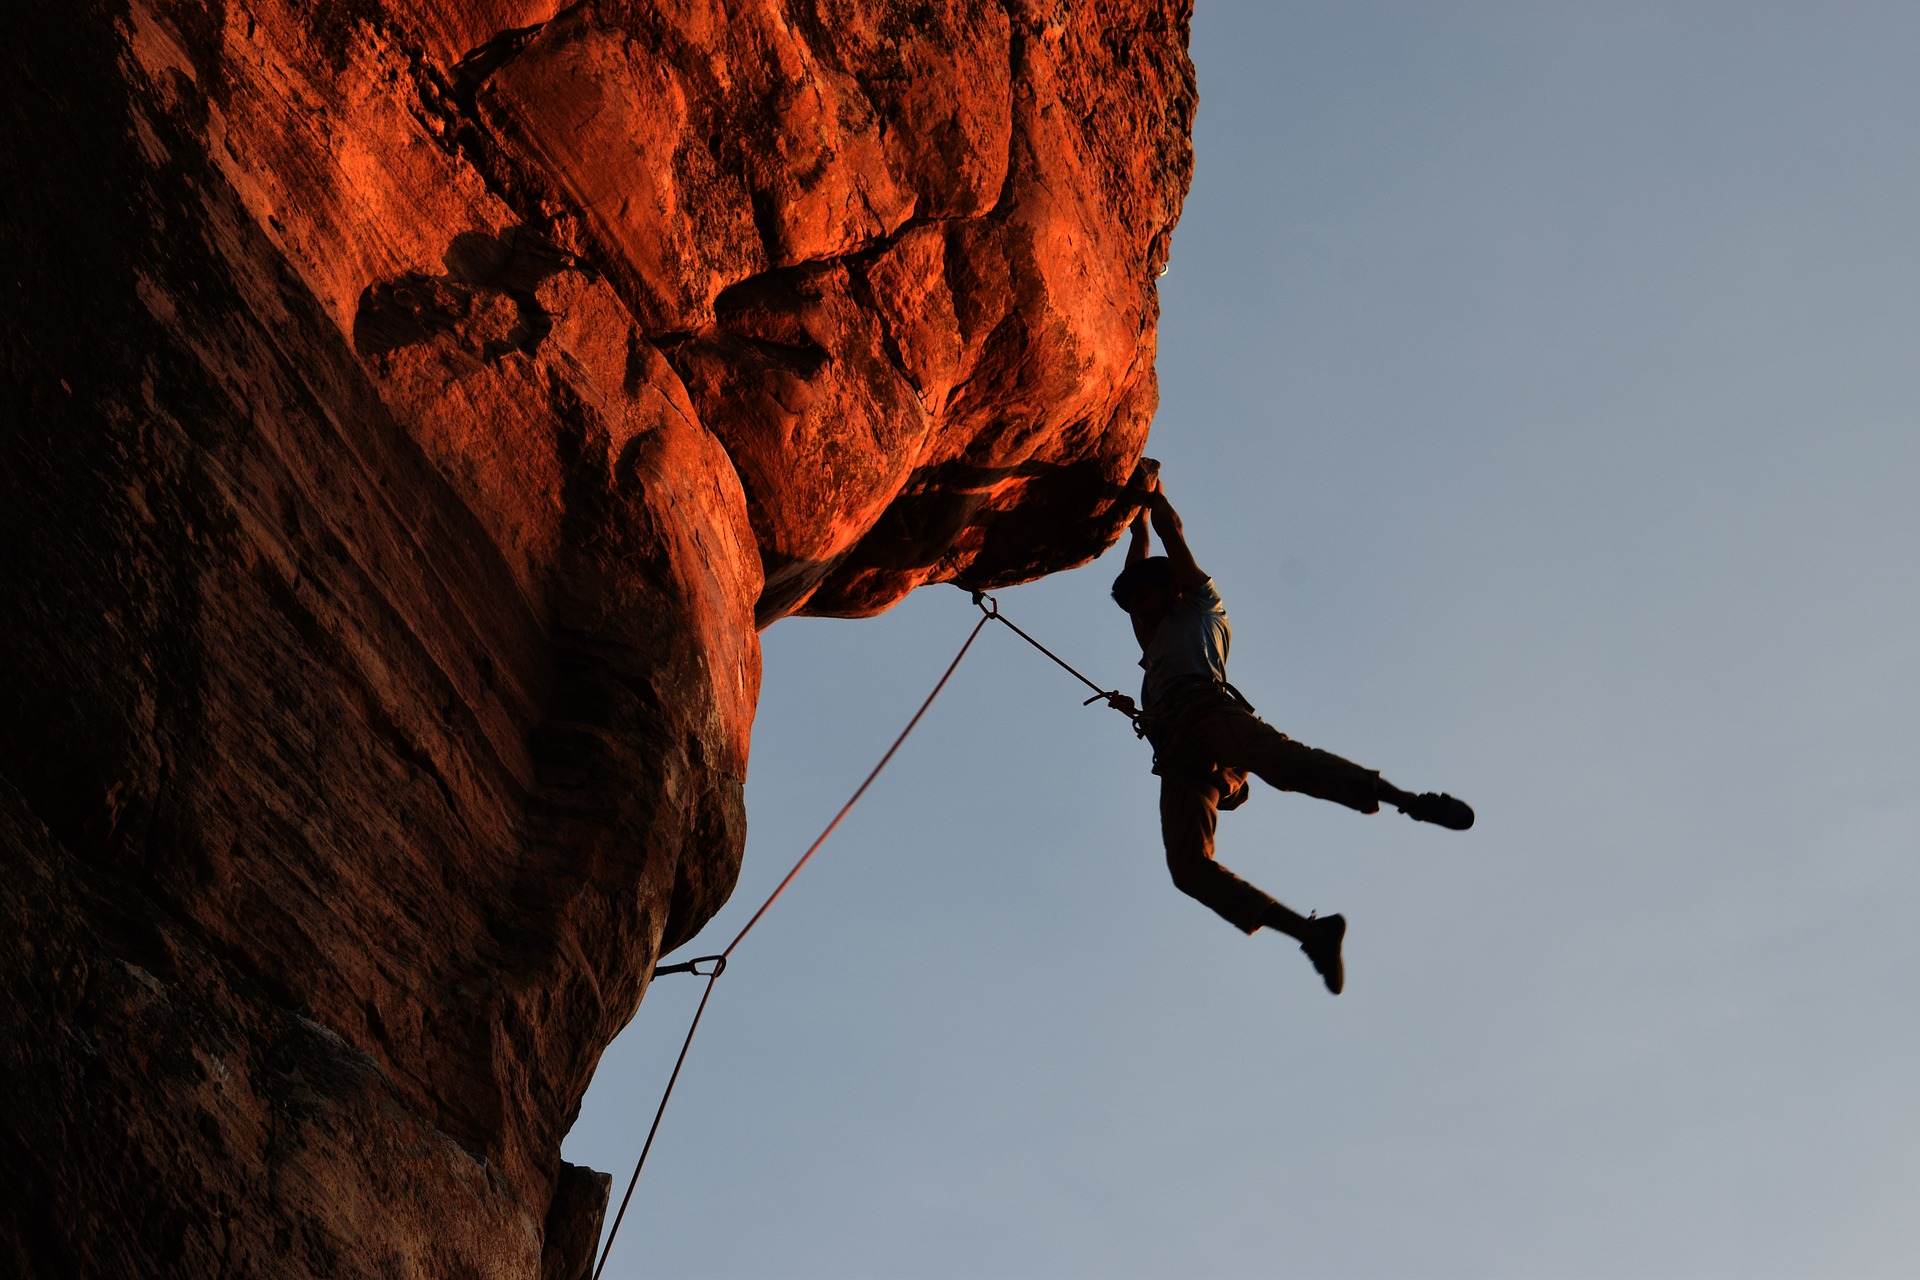 How to Get Better at Rock Climbing